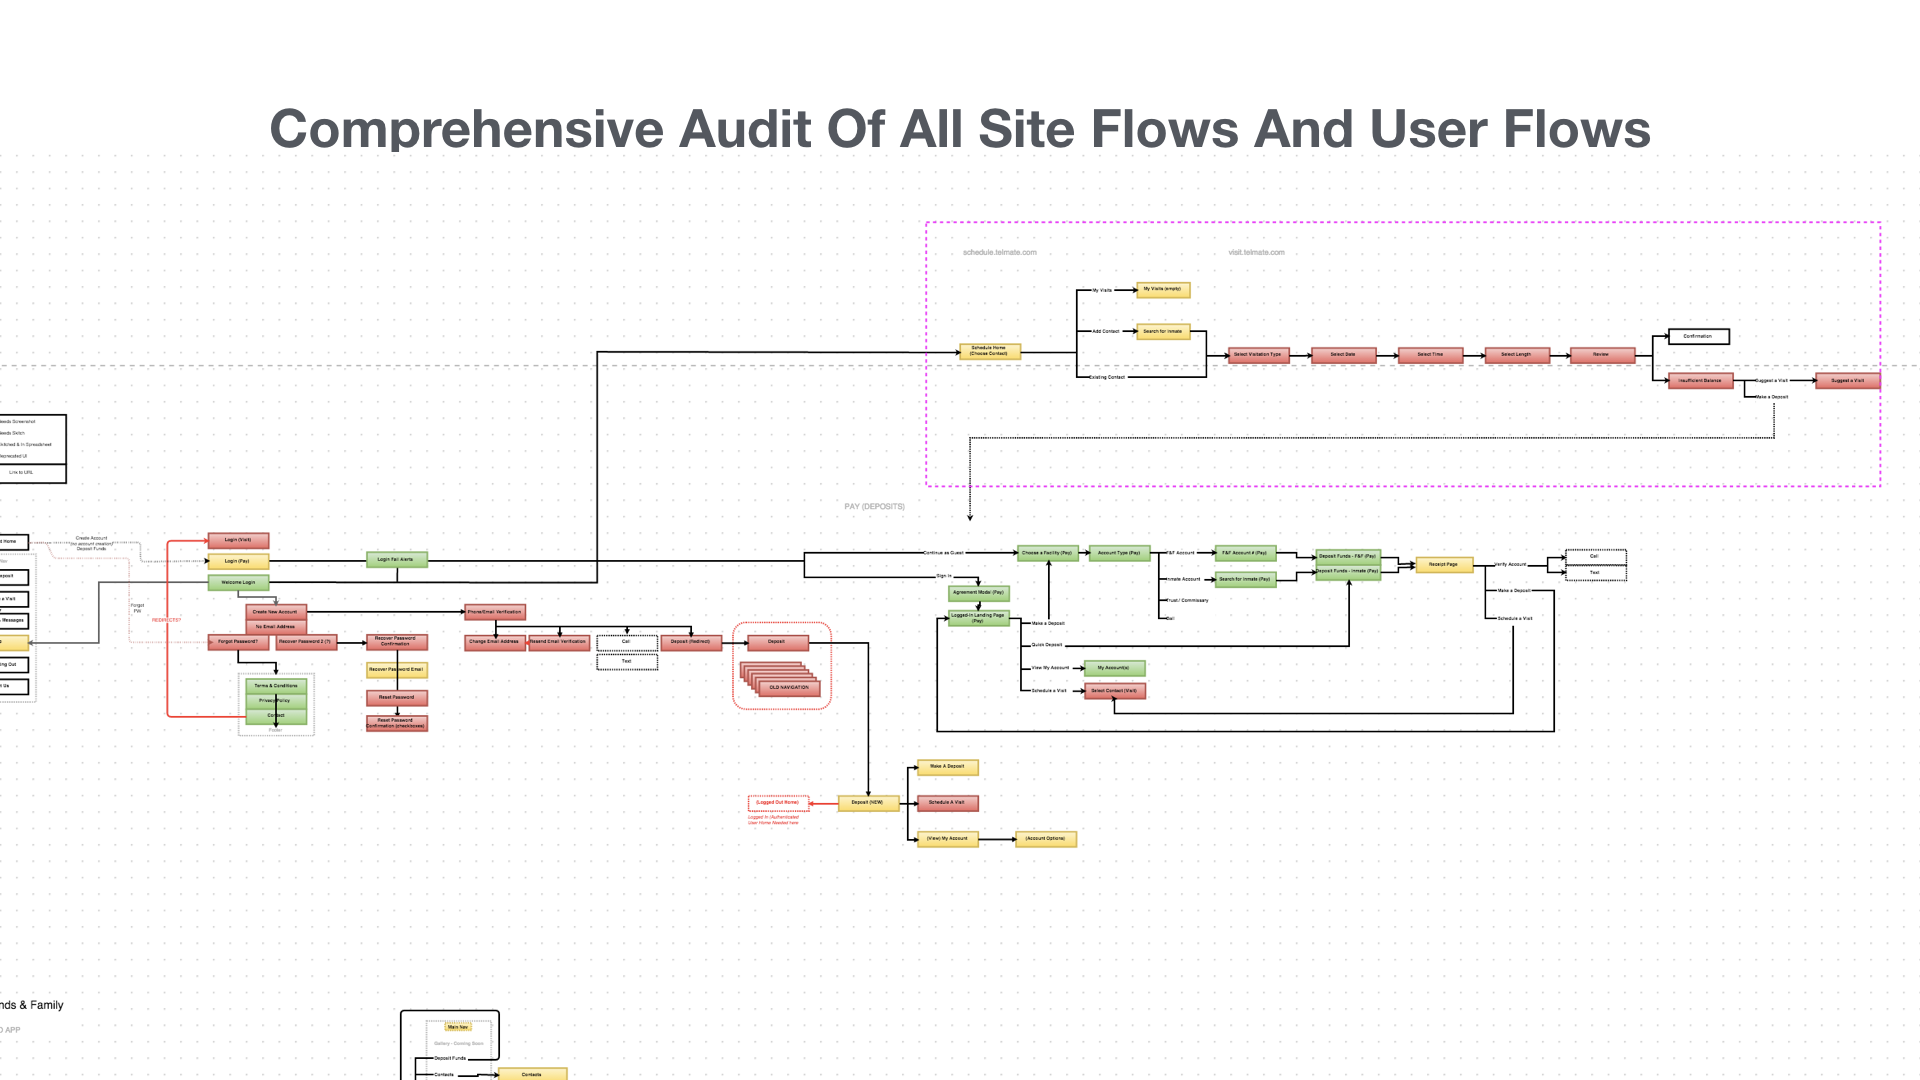 Sample from the exhustive audit of all user flows accross all devices